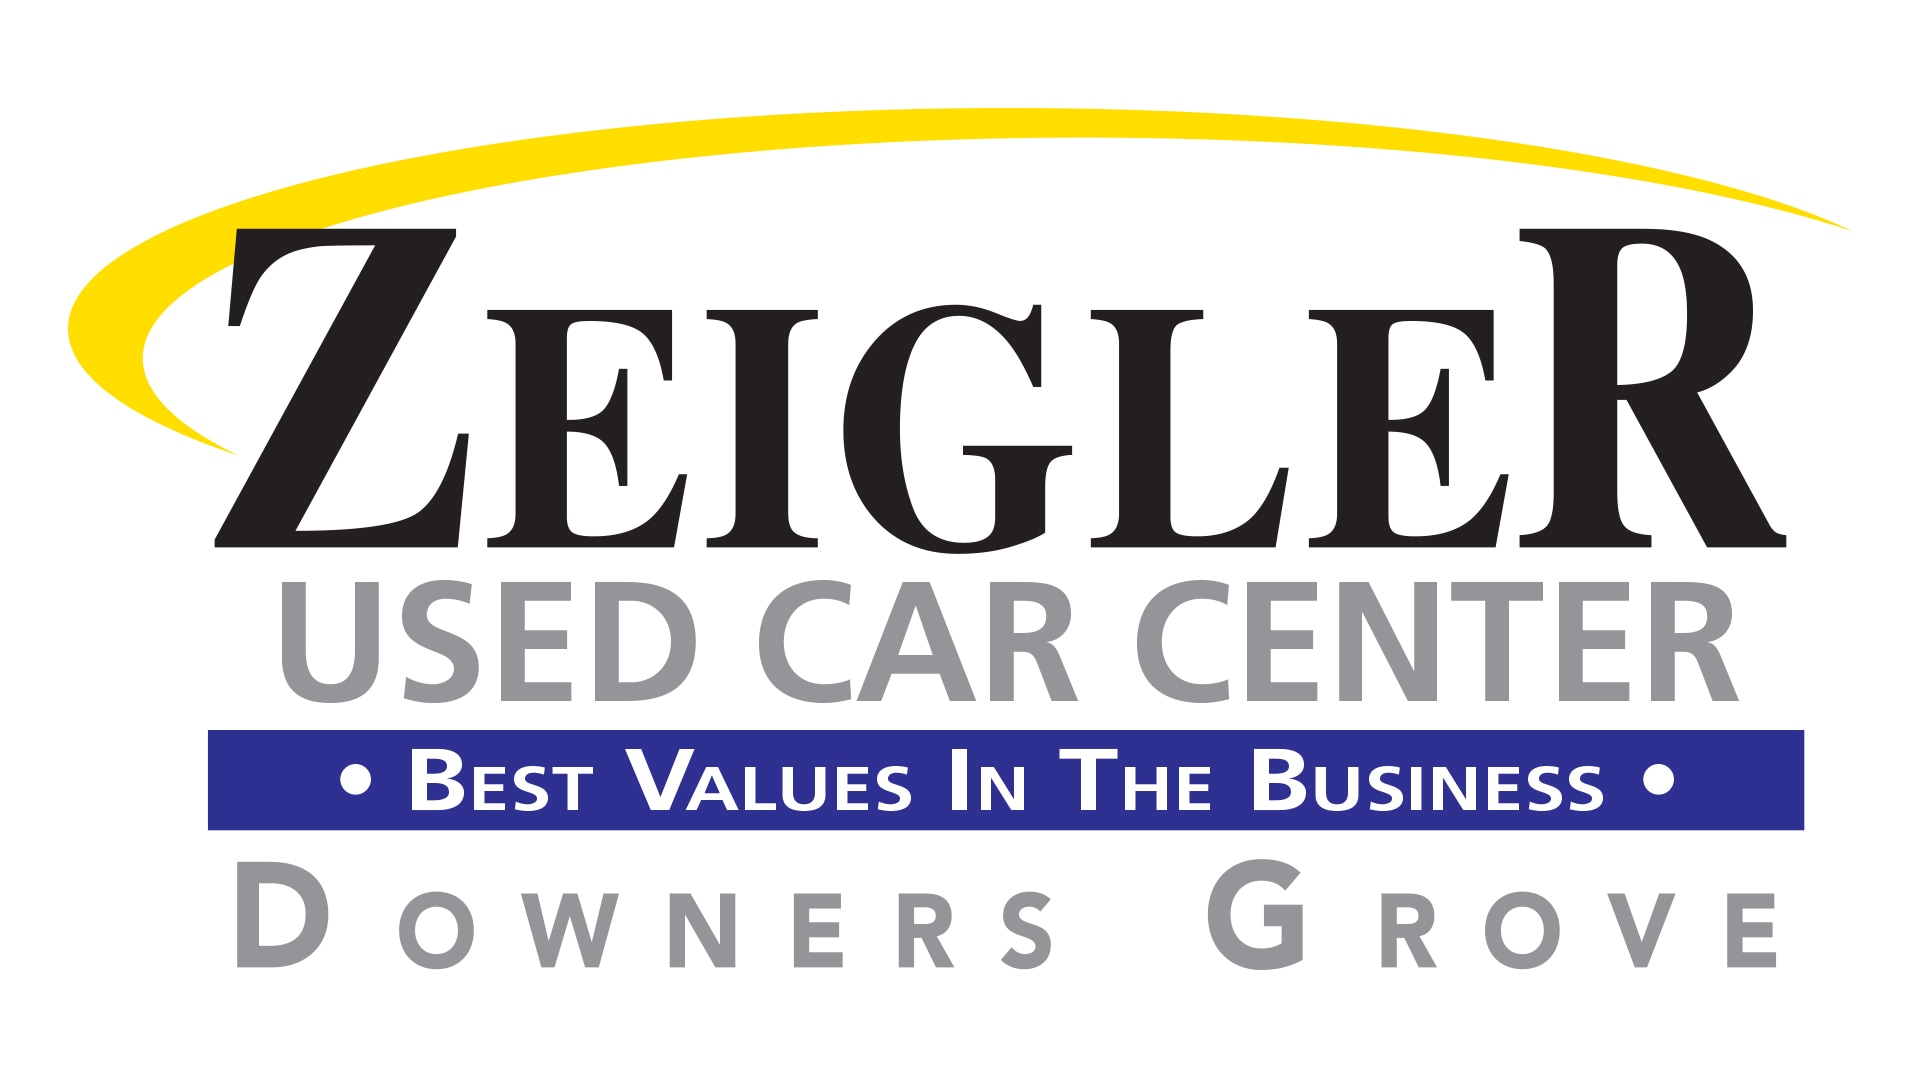 Zeigler Used Car Dealer Downers Grove Chicago IL